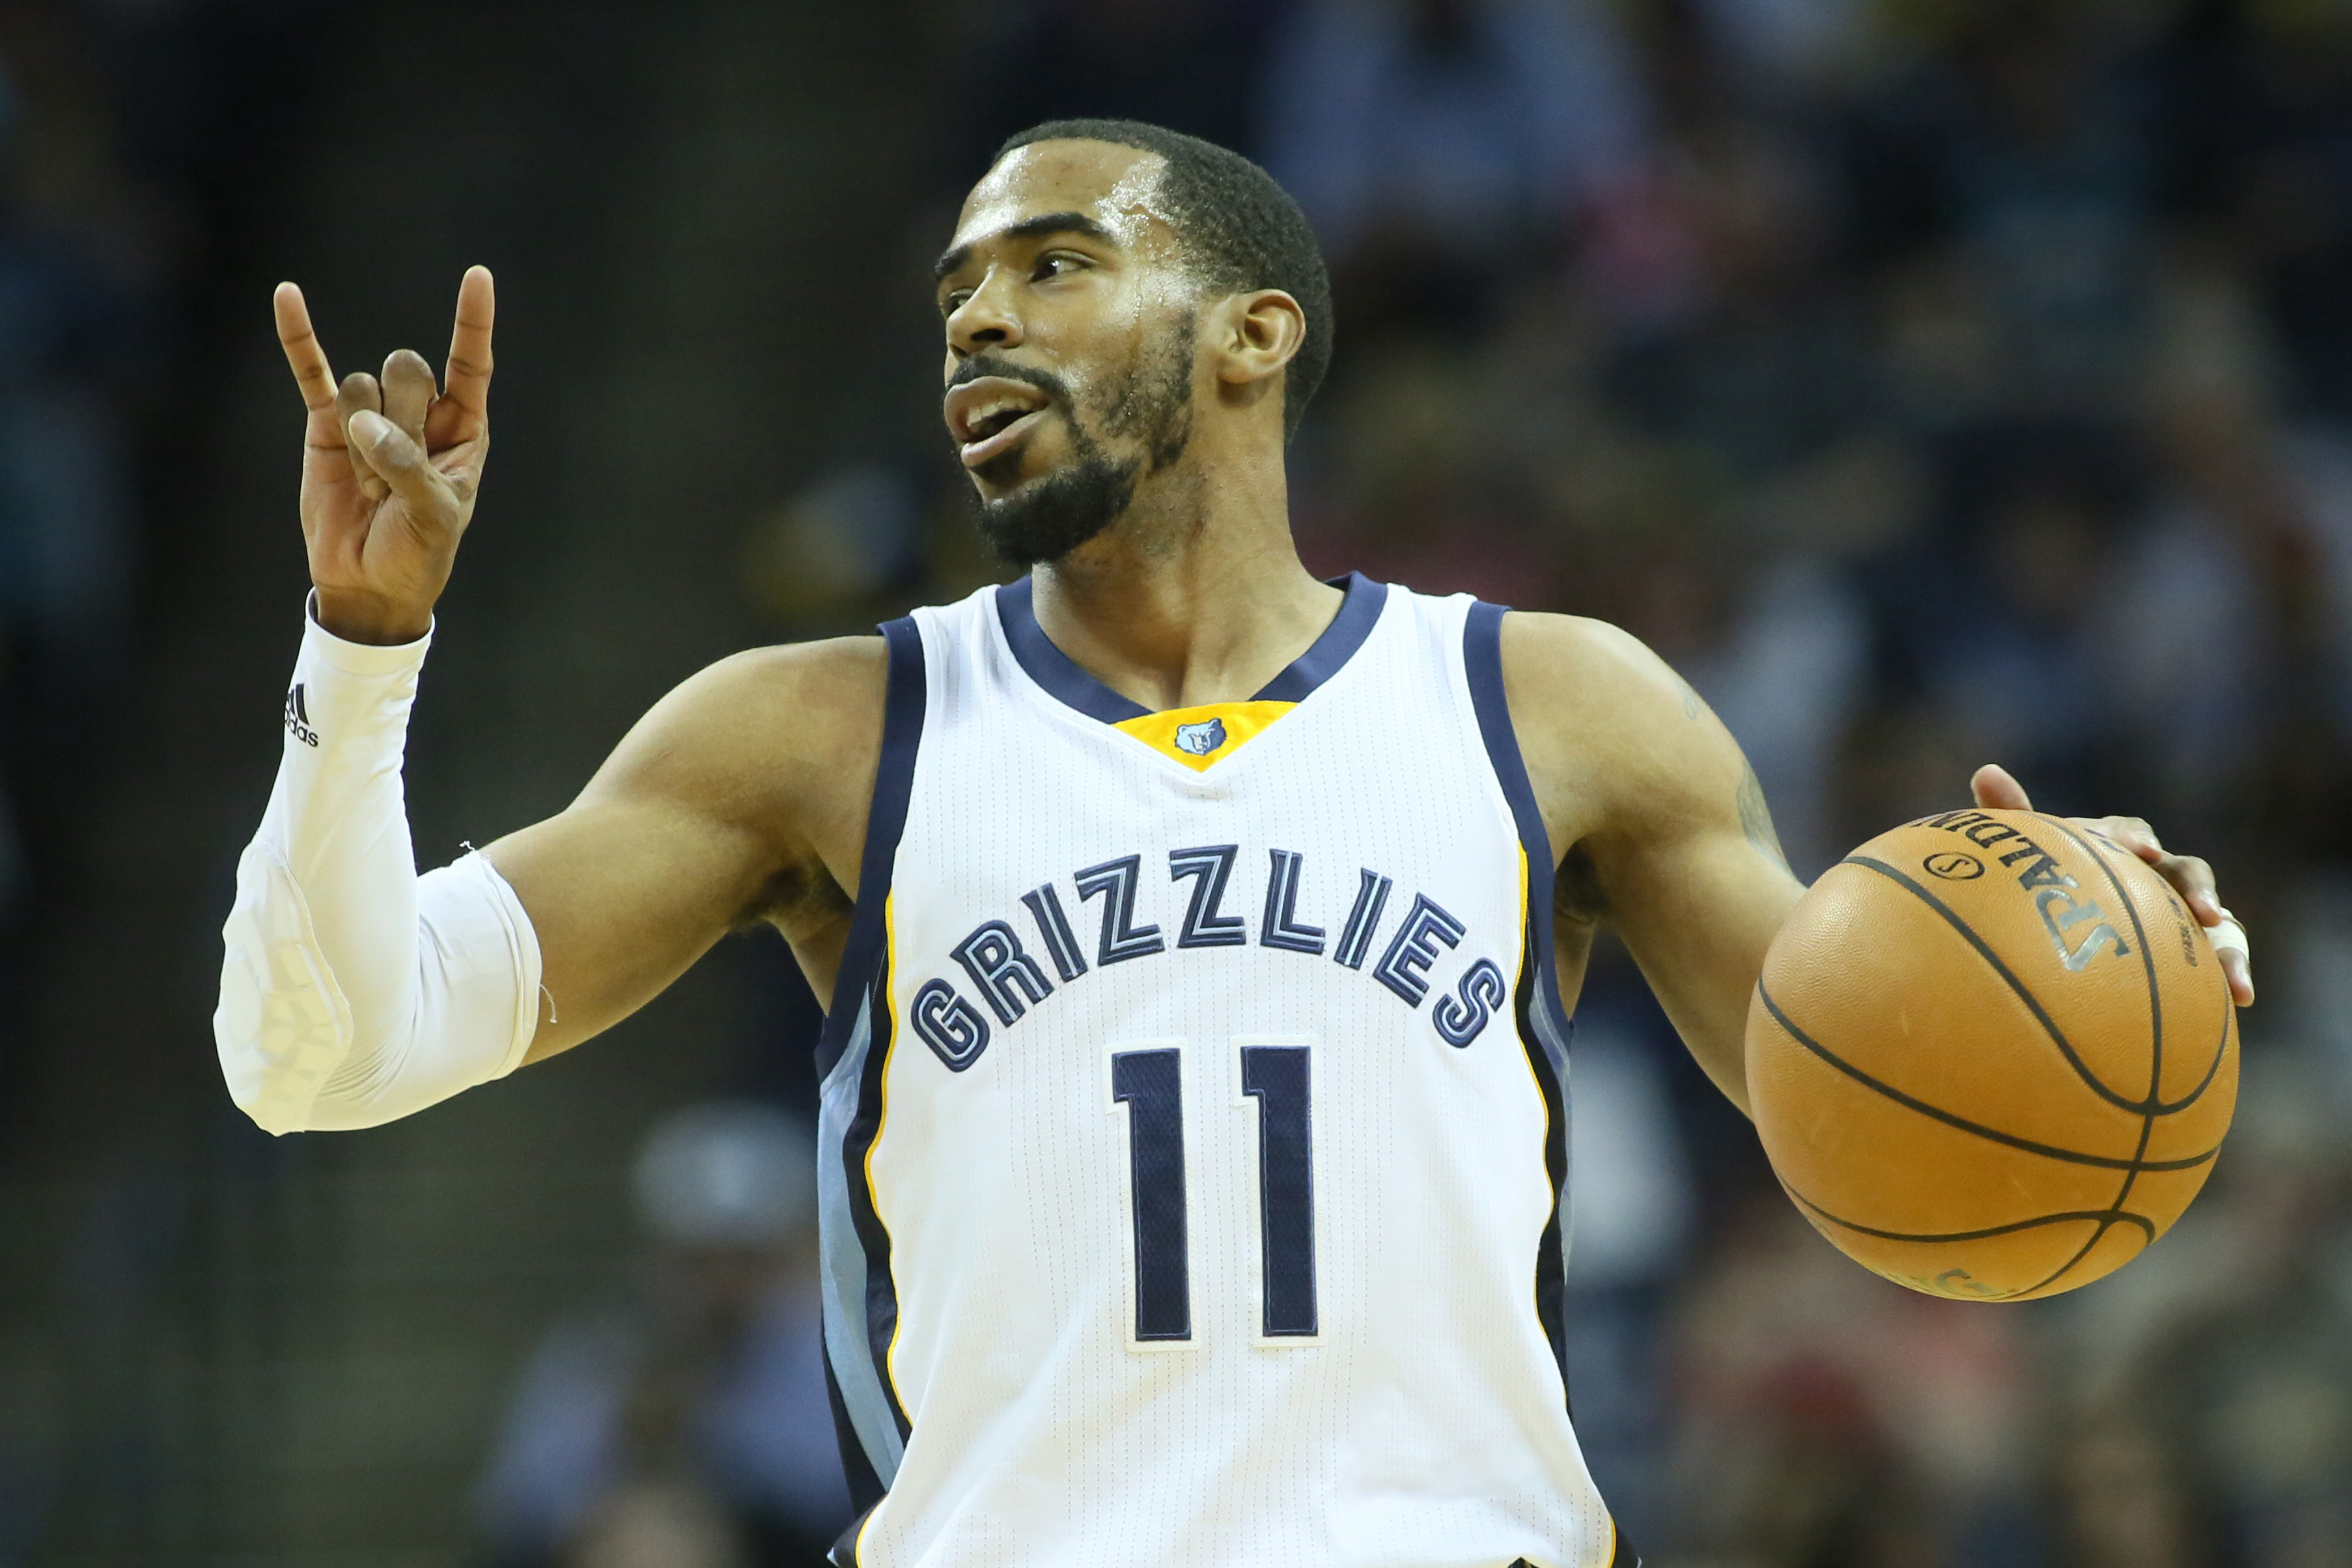 Mike Conley Jr. Signs With NCLUSIVE Sports